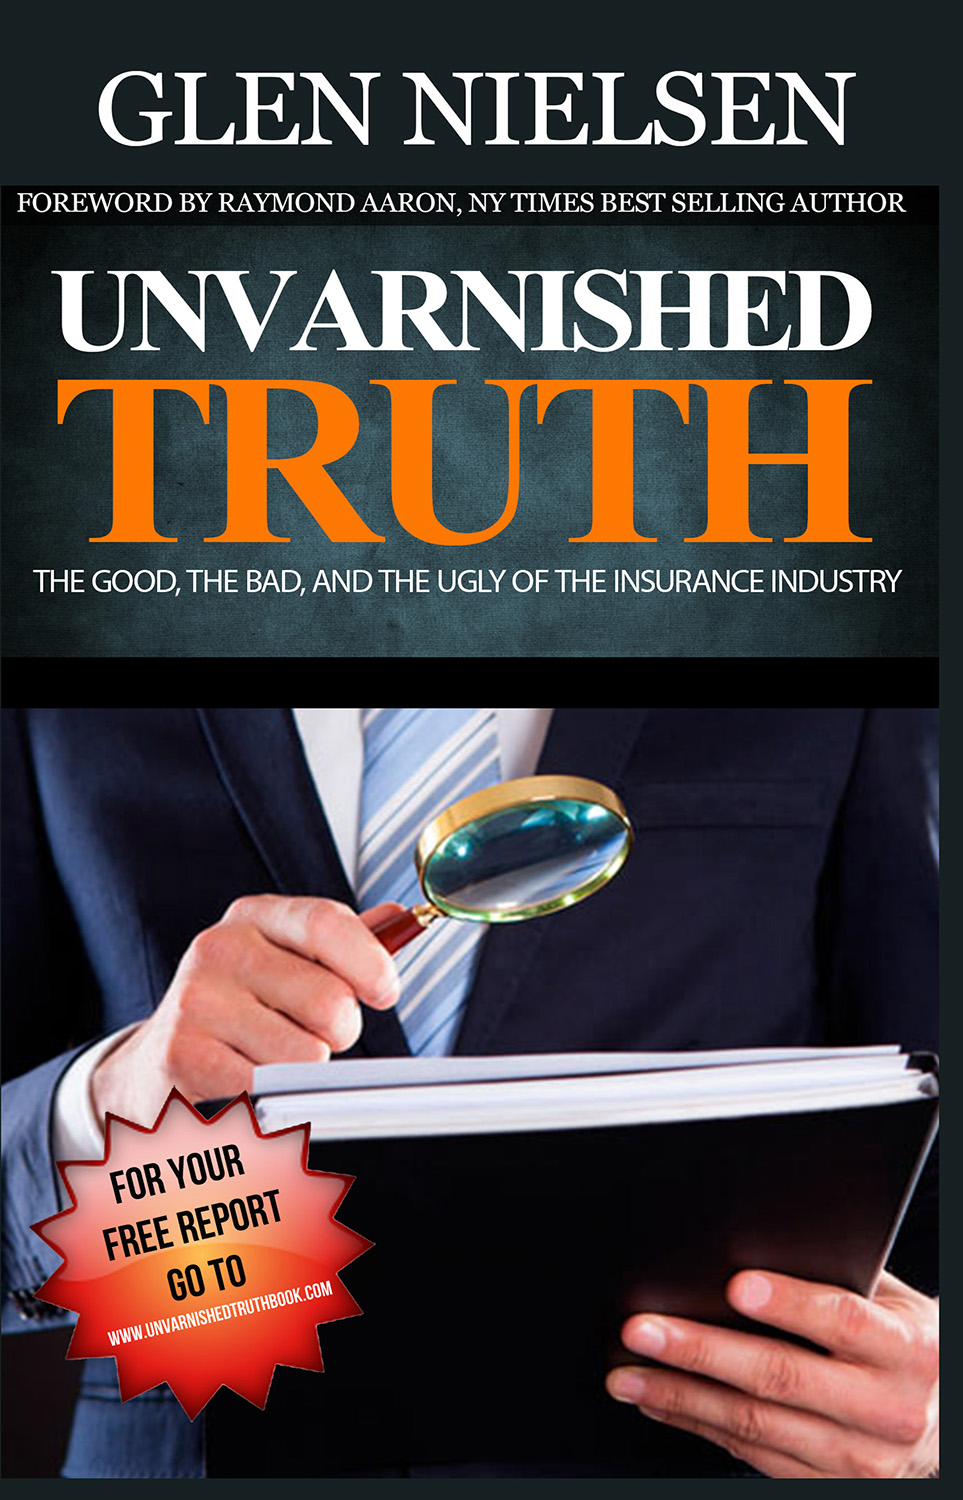 The Unvarnished Truth by Glen Nielsen  www.unvarnishedtruthbook.com